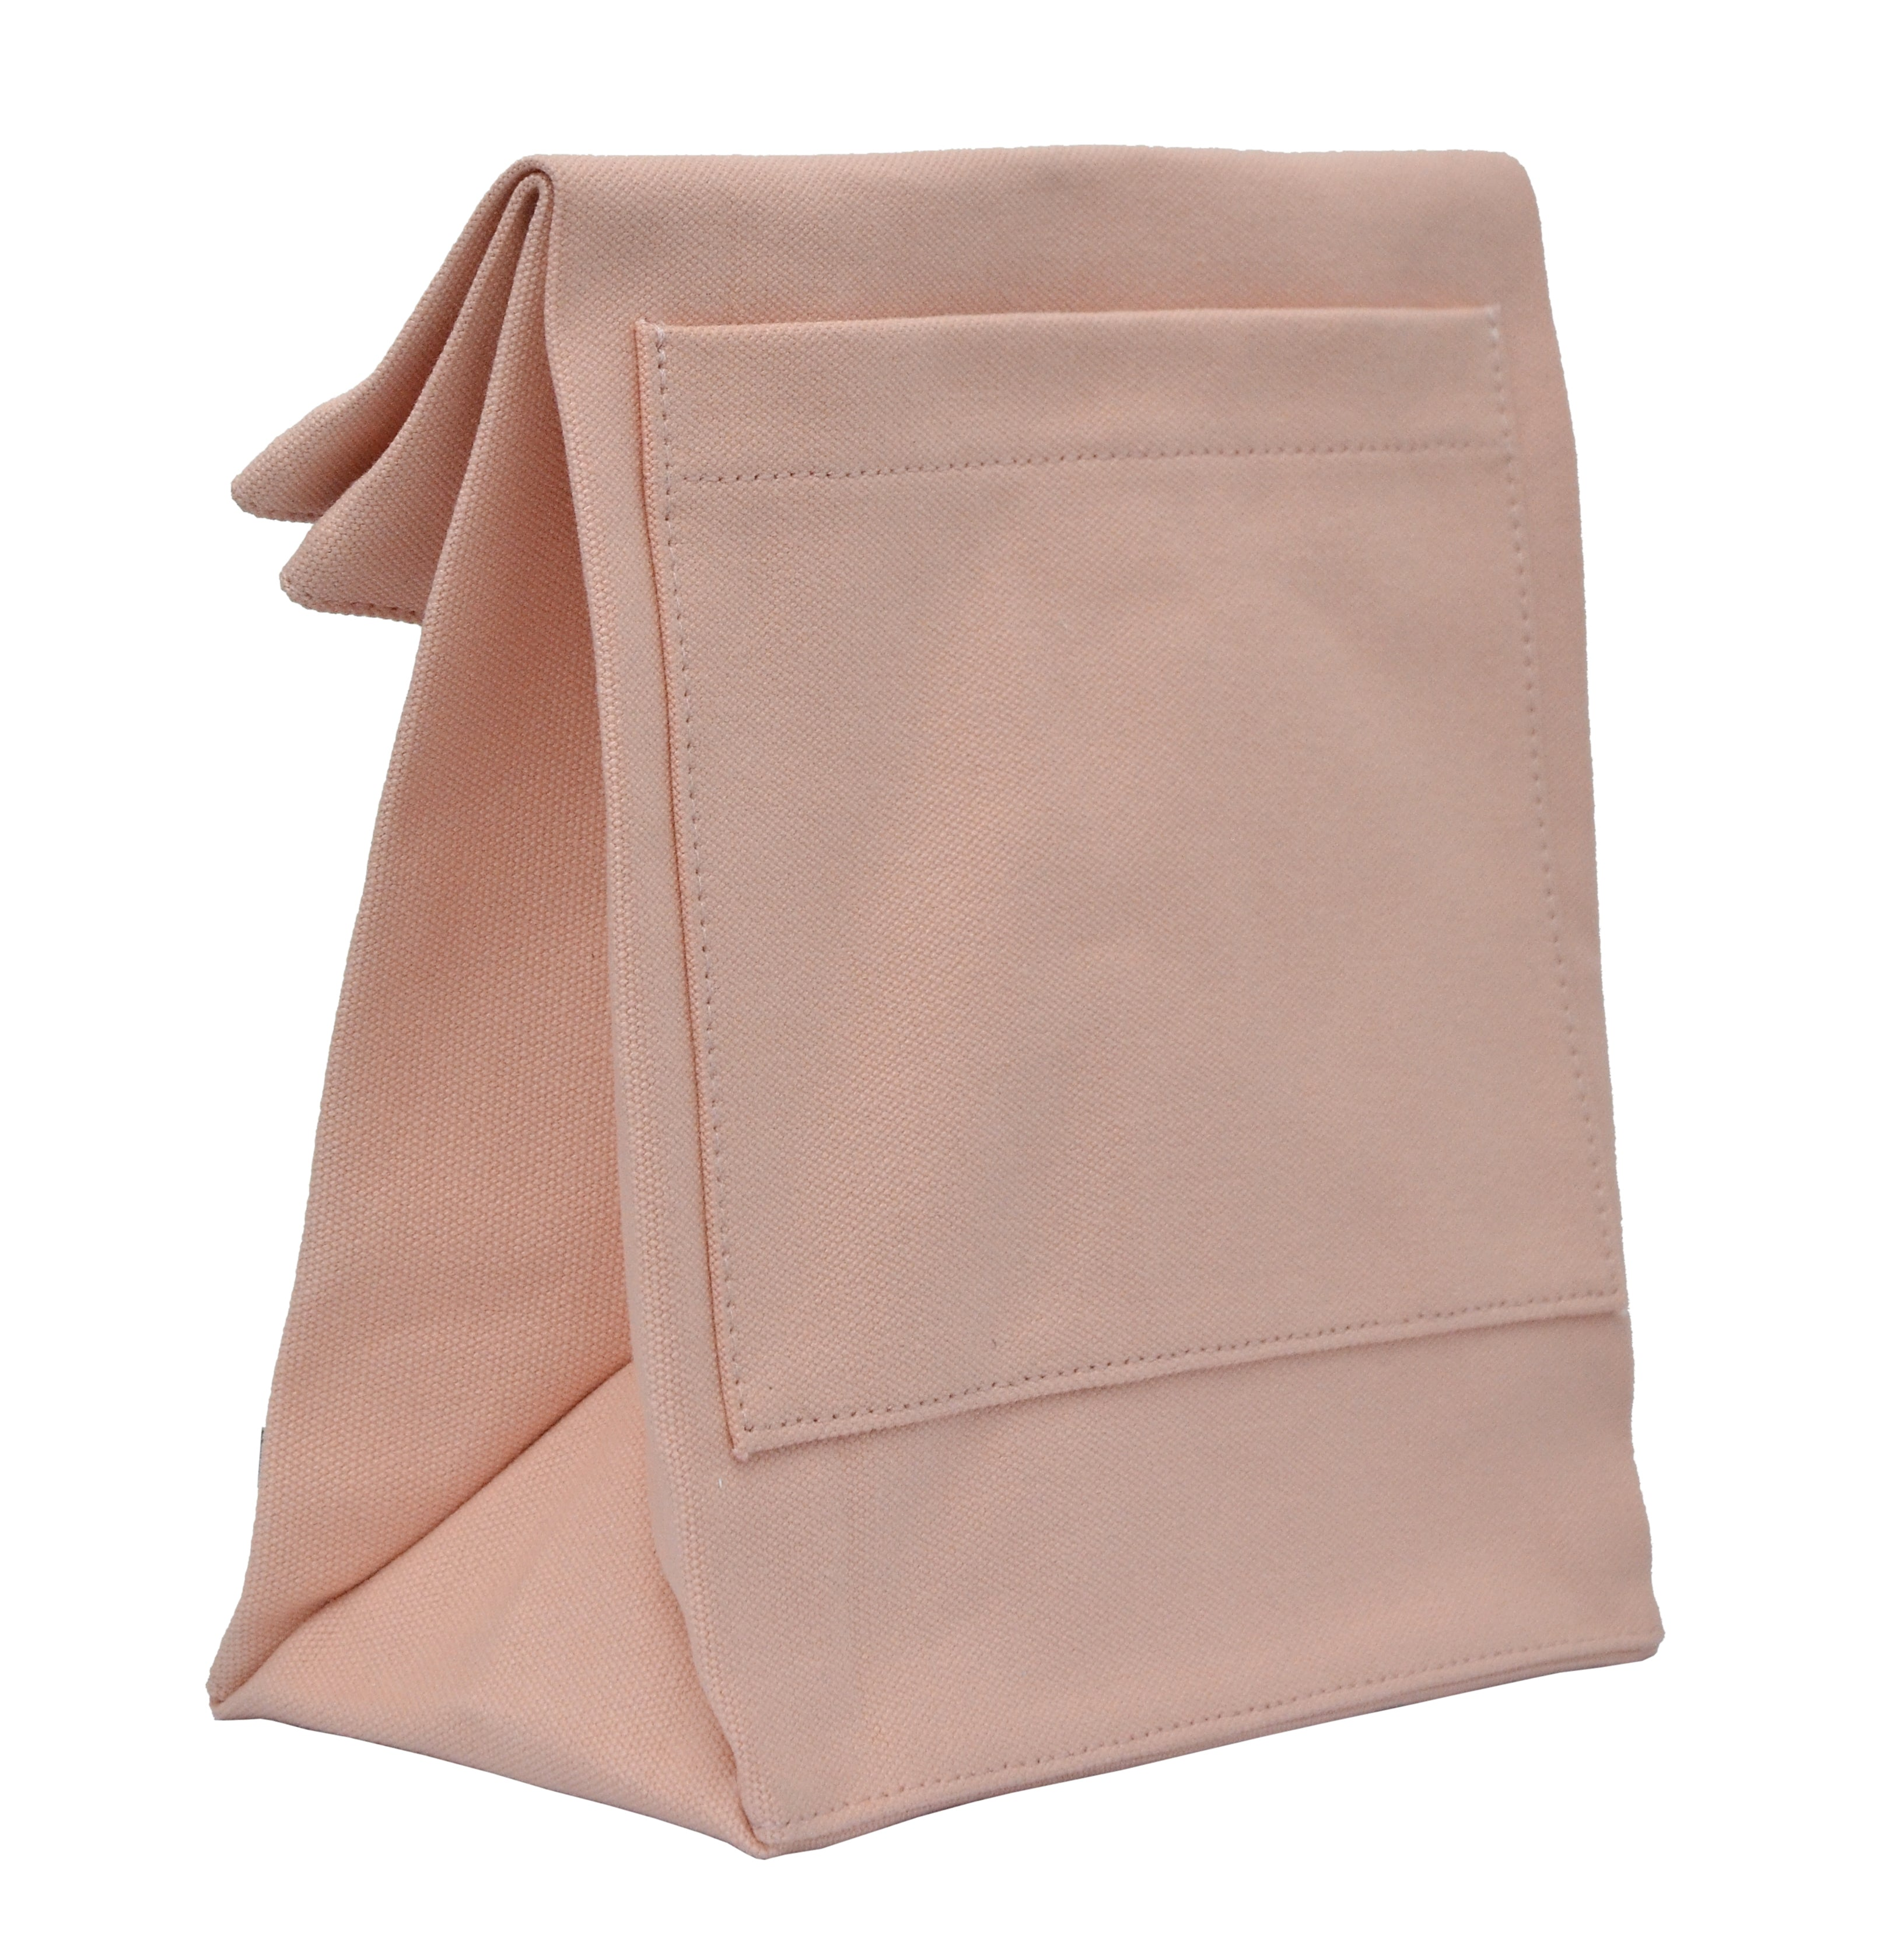 Moraltive Lunch Bag Salmon Pink